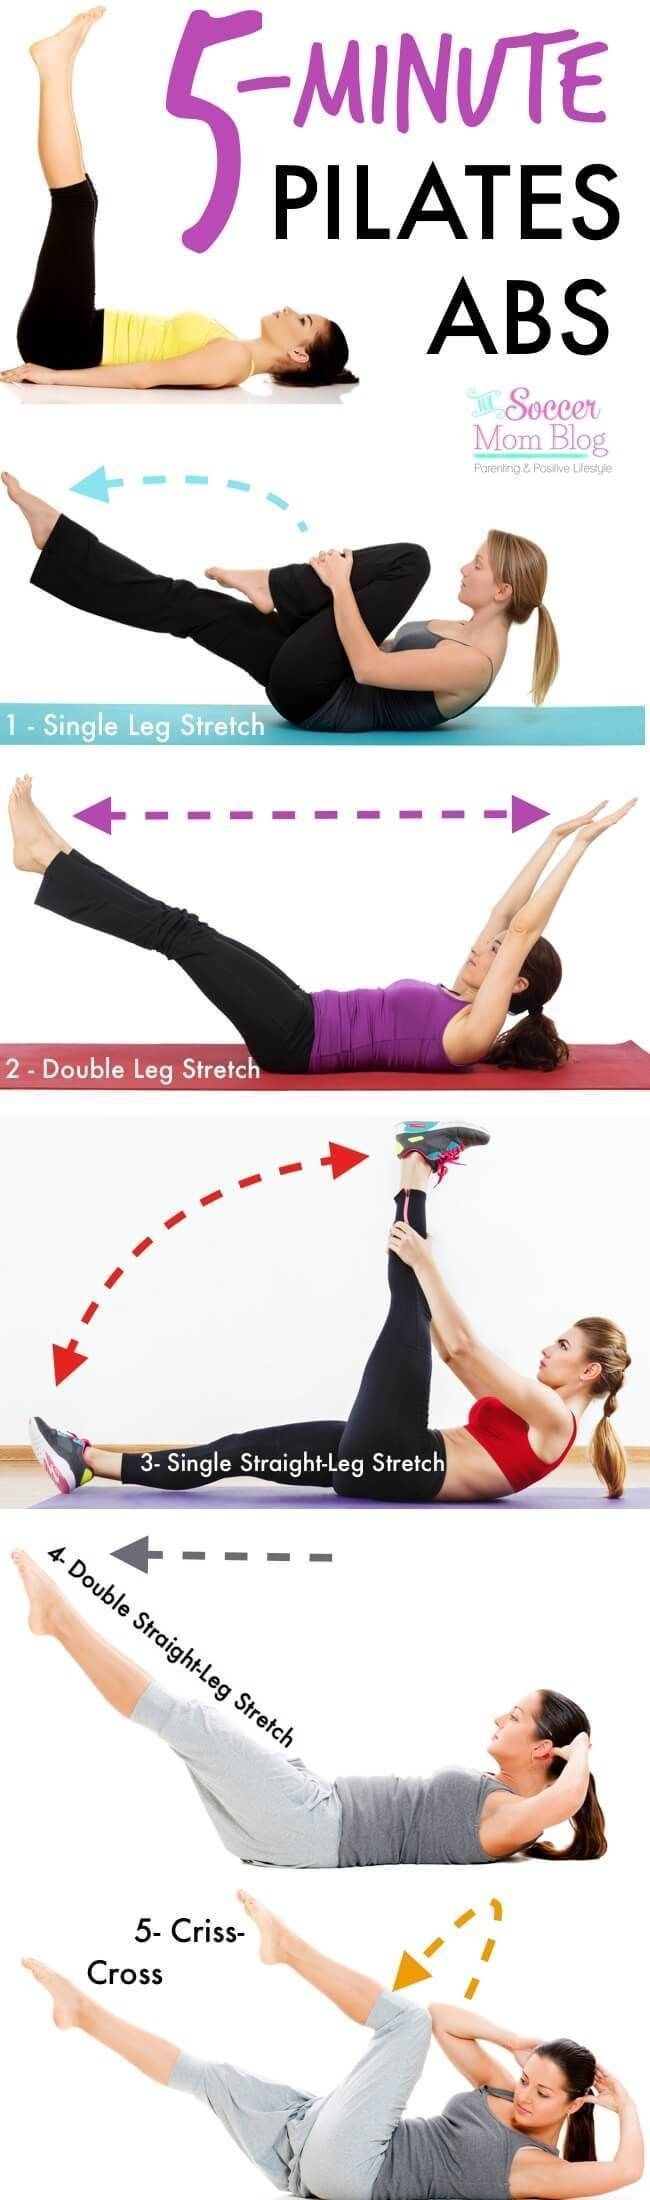 These are the BEST workouts to get rid of belly fat!! Will definitely try these stomach workouts!!